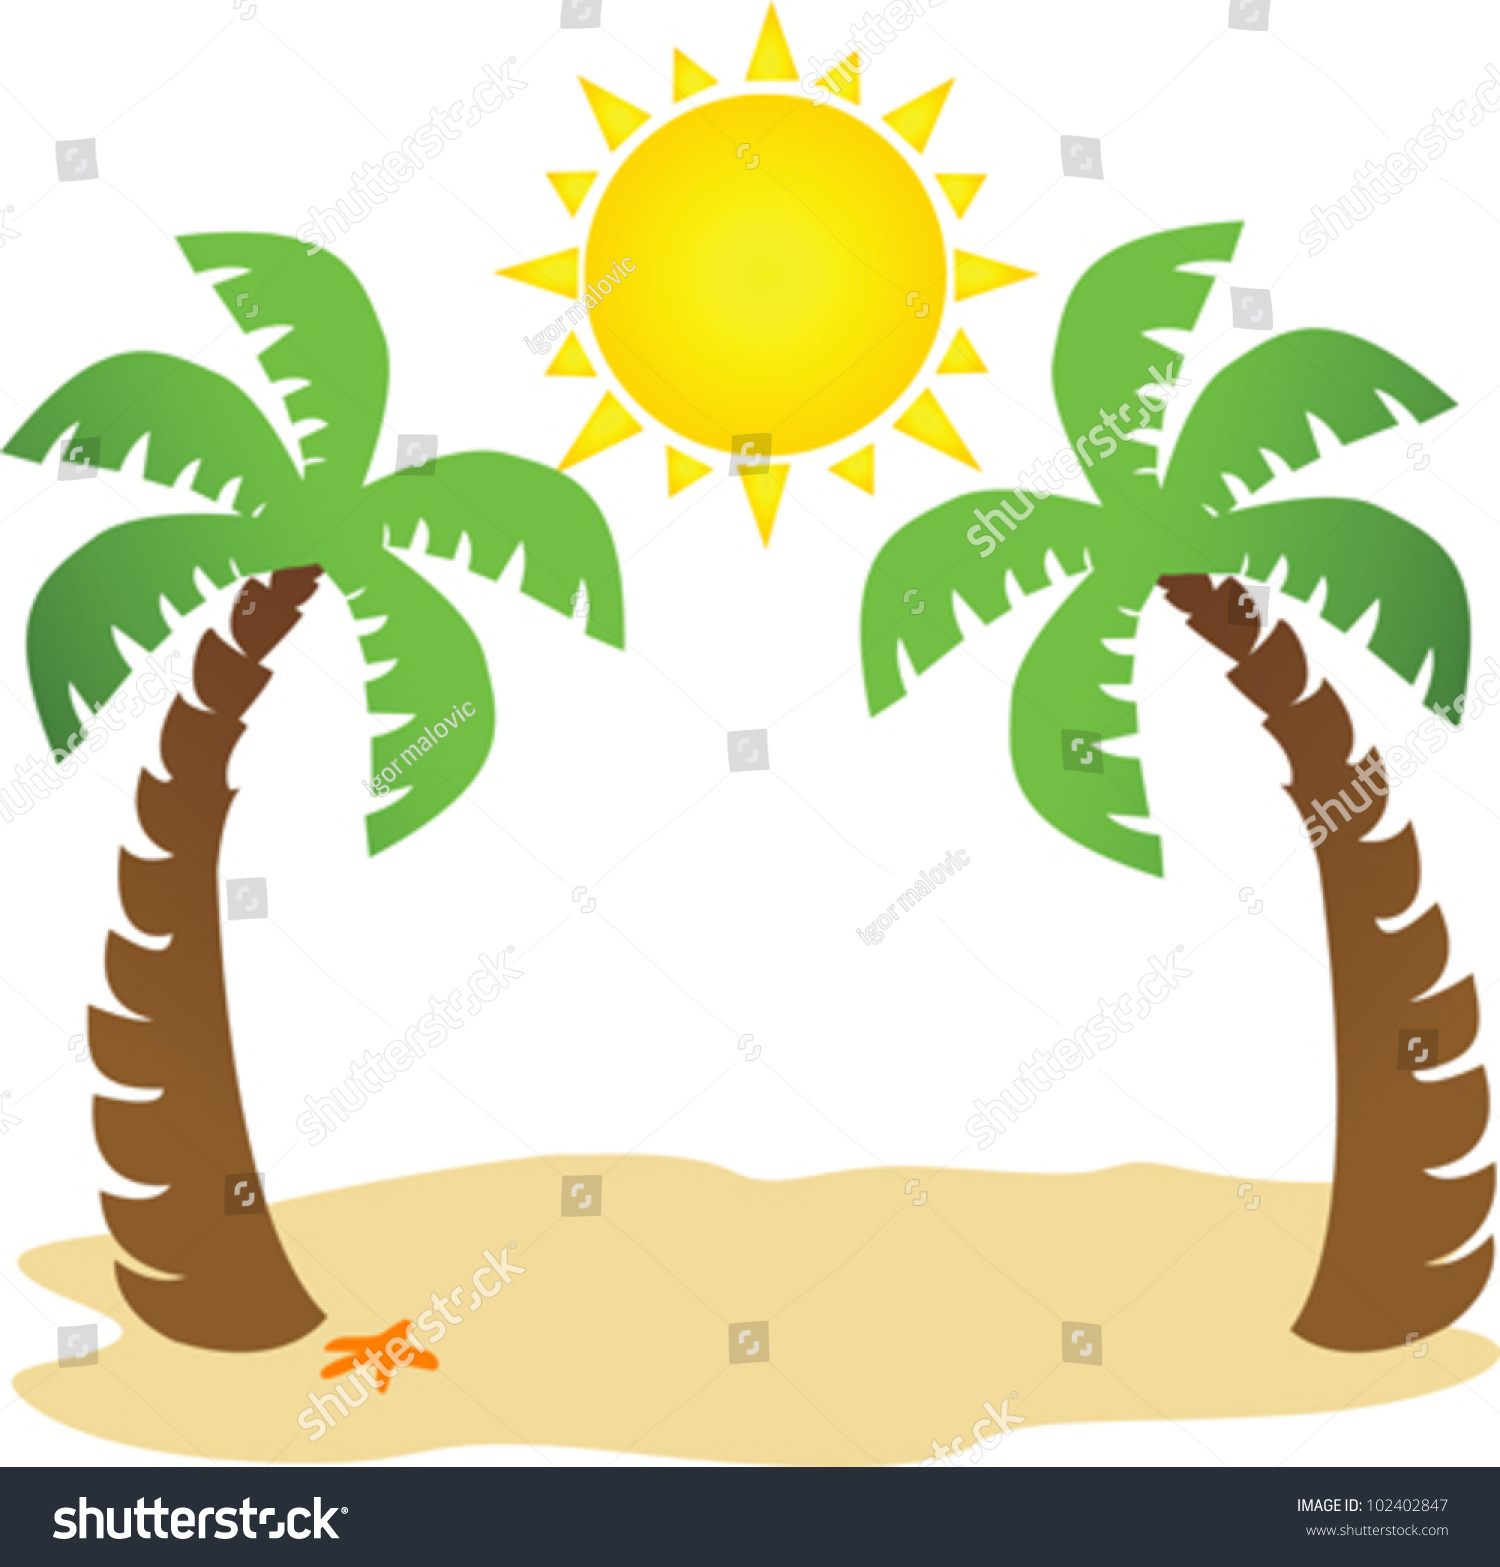 illustration two palm trees sun space stock vector 2018 102402847 rh shutterstock com  clipart palm trees sun